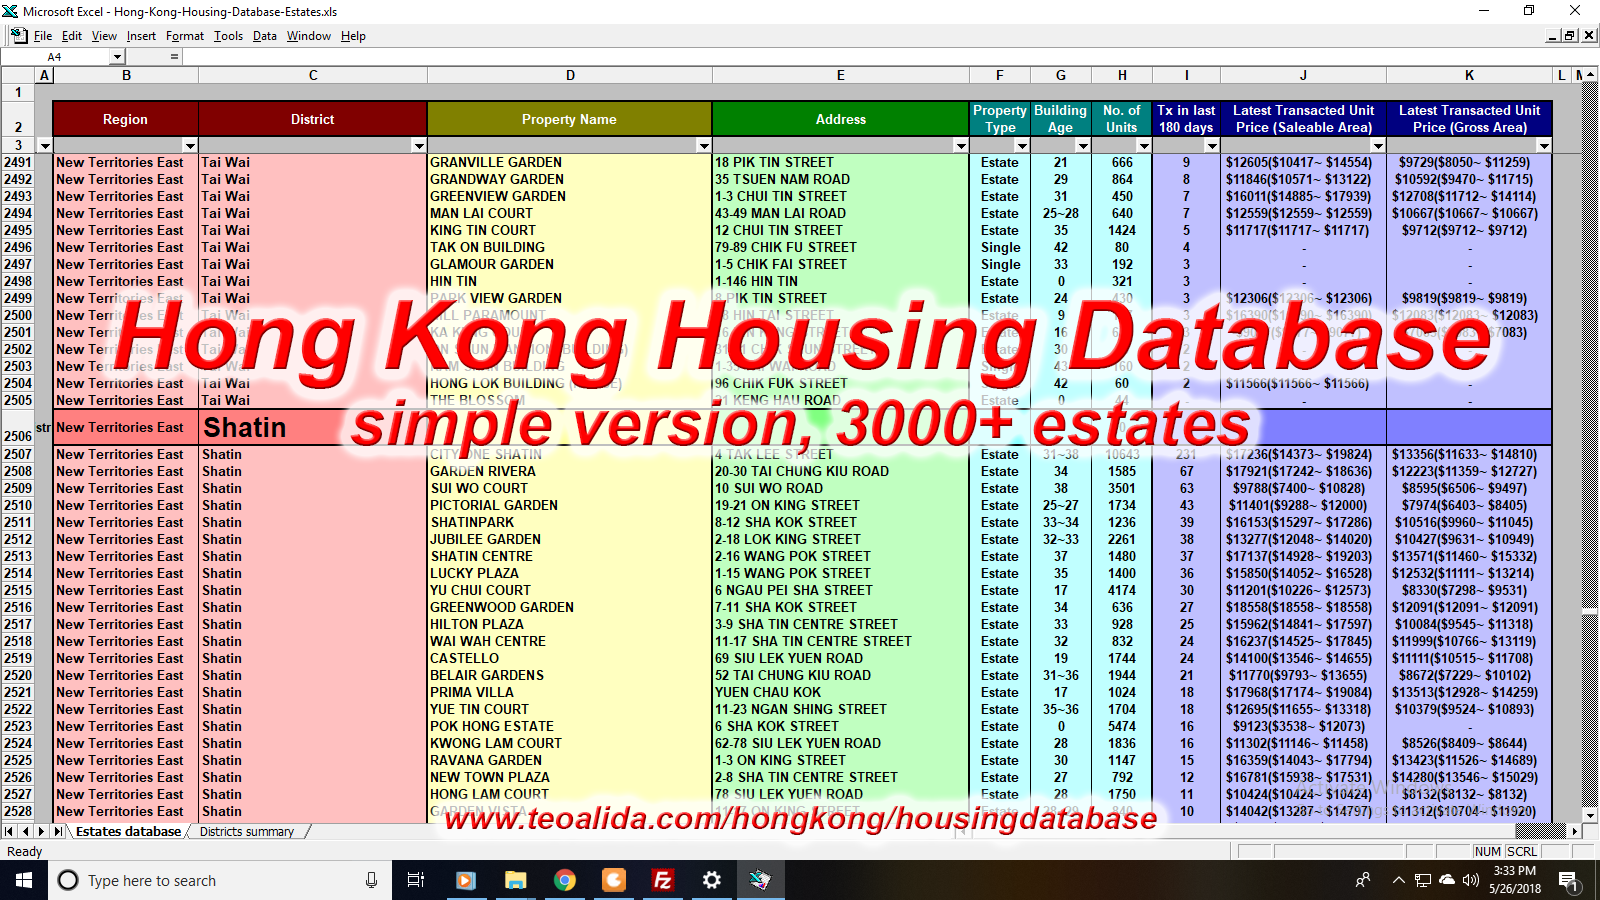 Hong Kong Housing Database